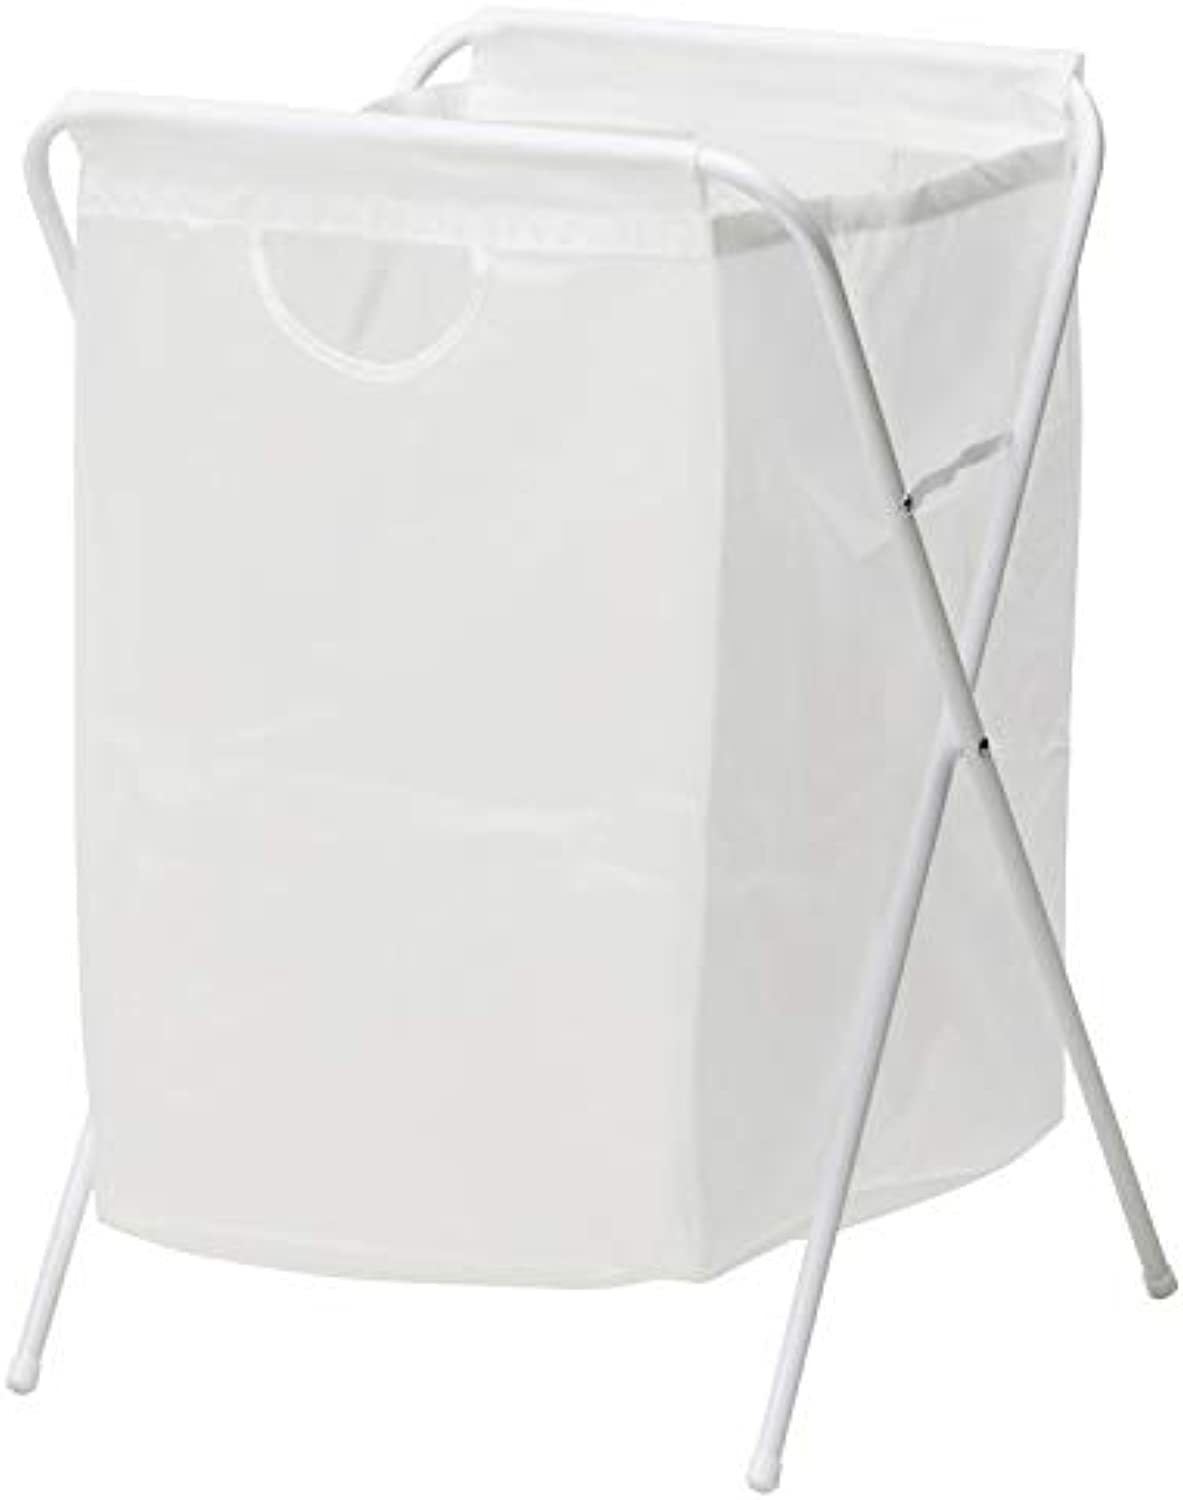 KEANER precioso Regalo Waterproof Laundry Basket Foldable Standable Storage Bag